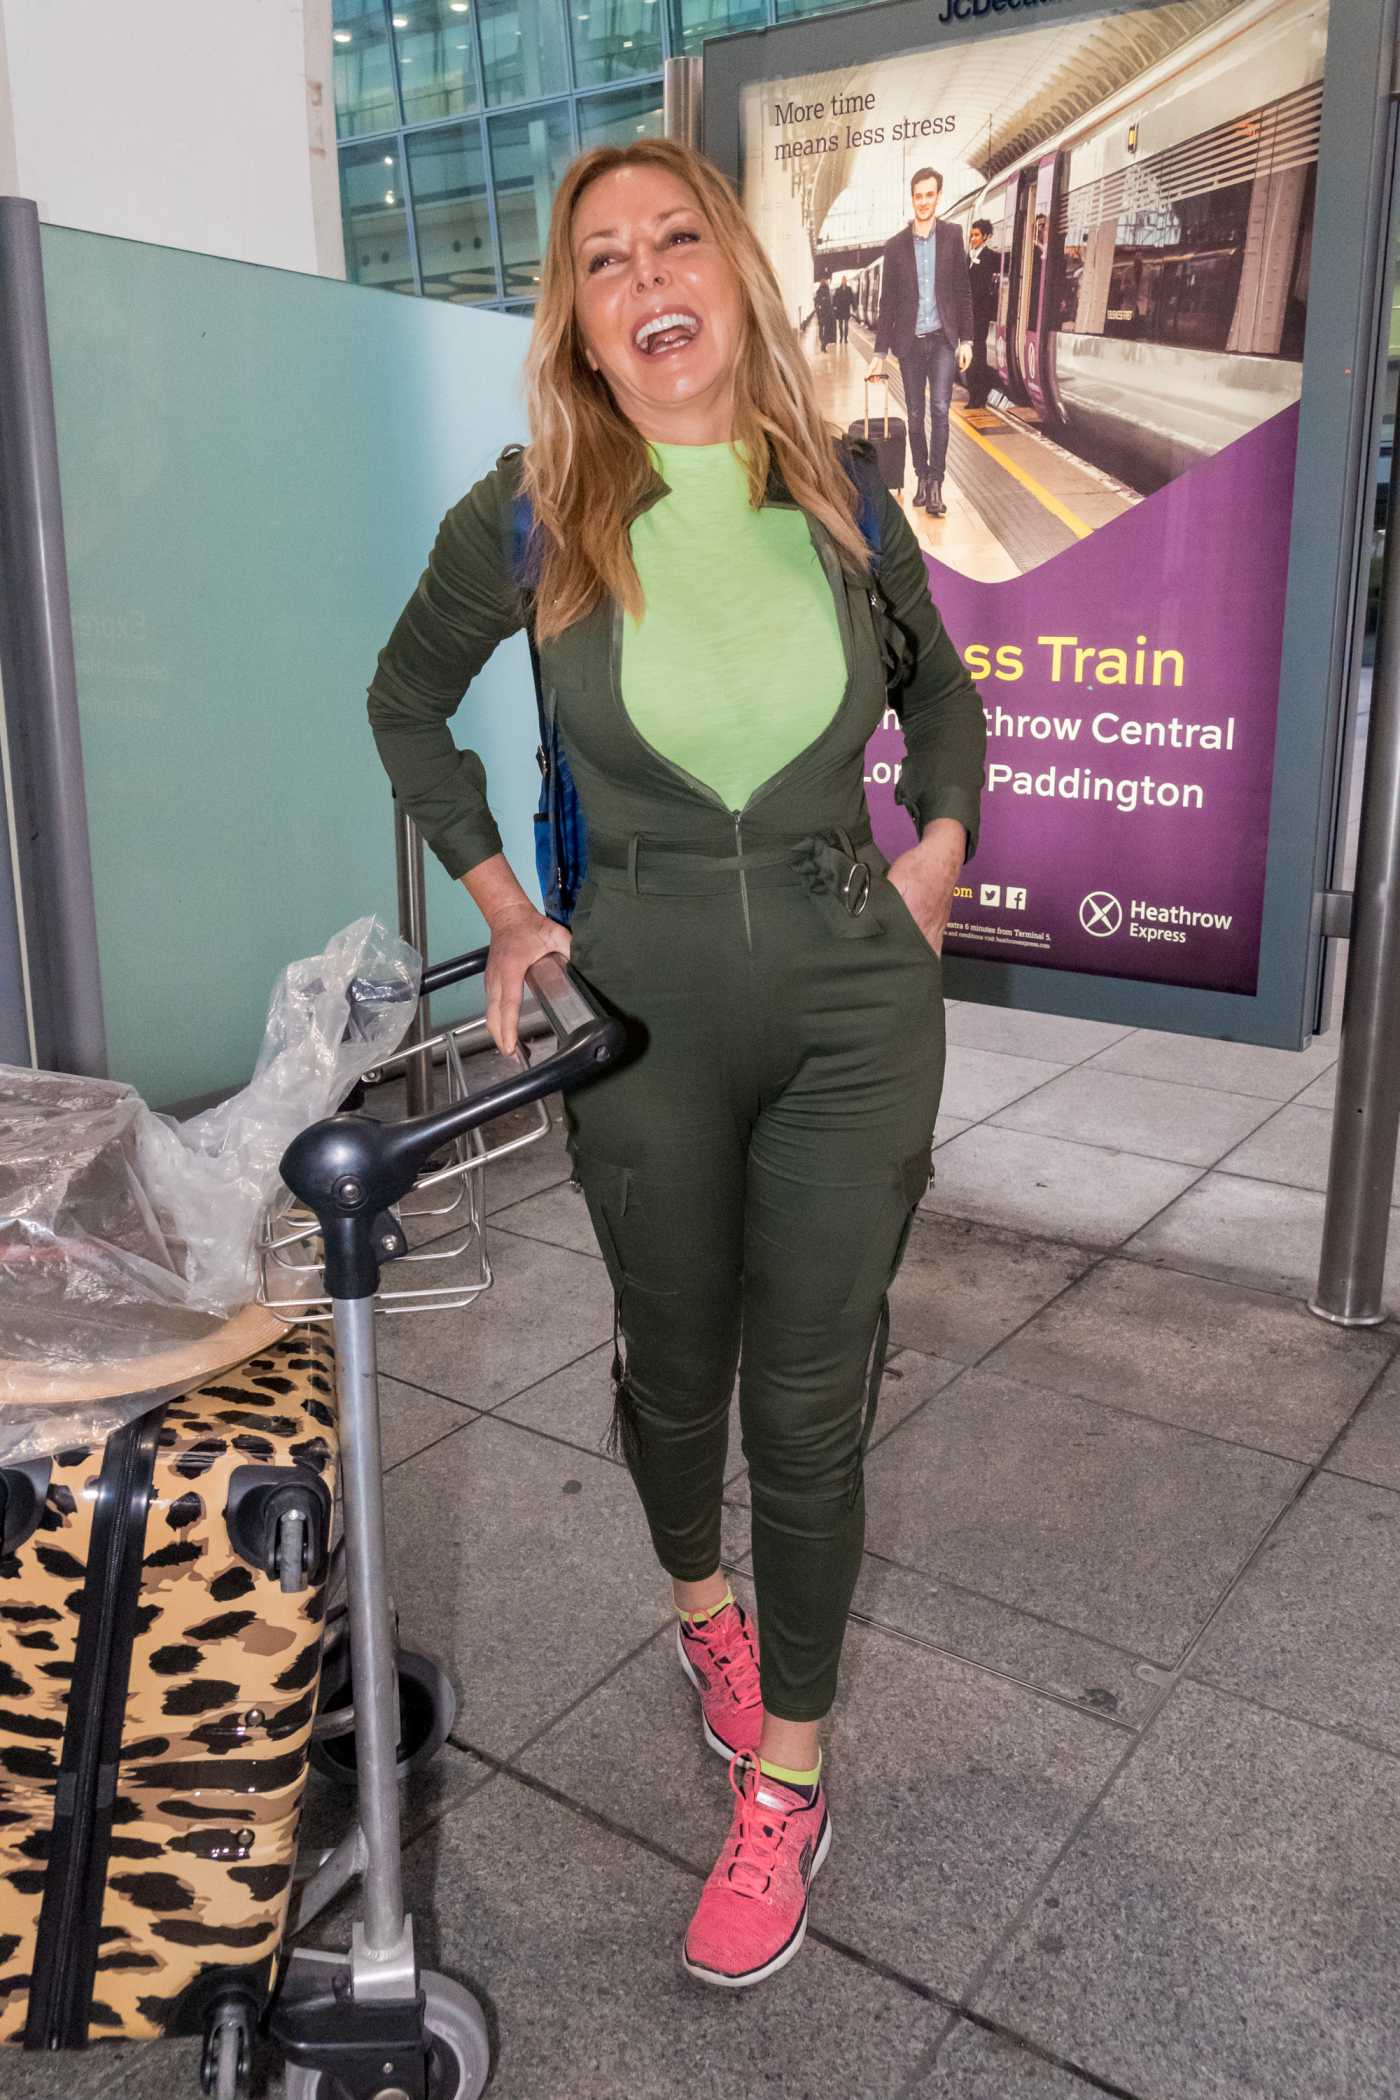 Carol Vorderman in a Green Overalls Arrives at Heathrow Airport in London 04/02/2019